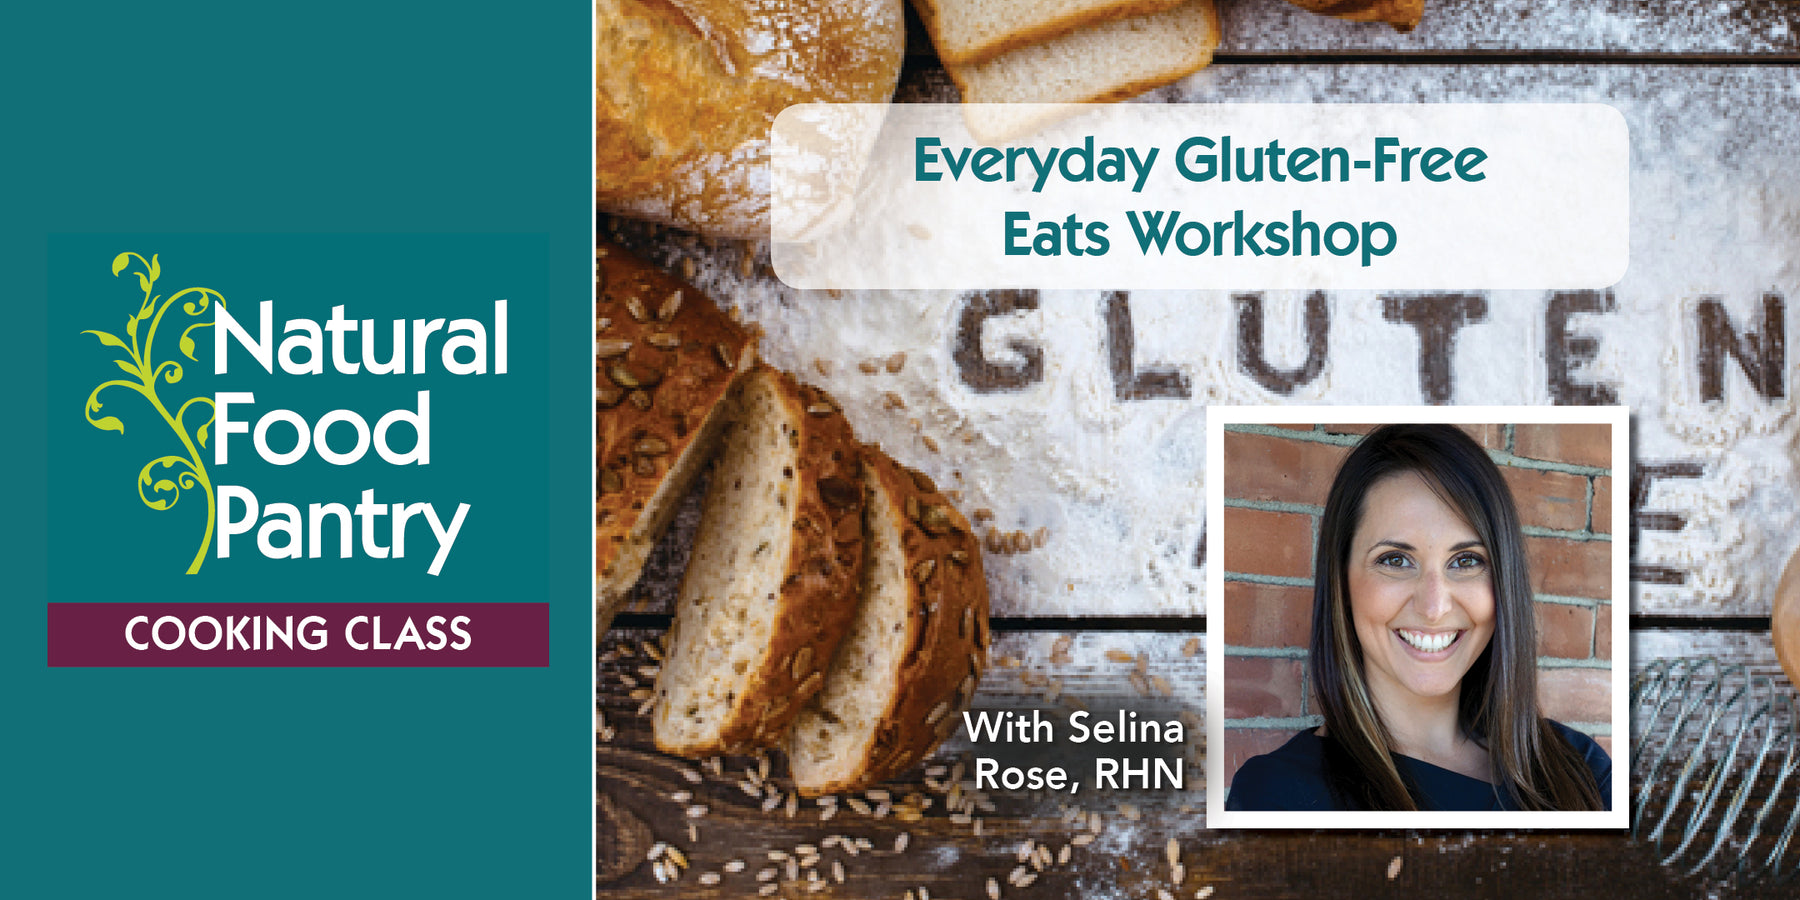 Oct 19: NFP Cooking Class:  Everyday Gluten-Free Eats Workshop